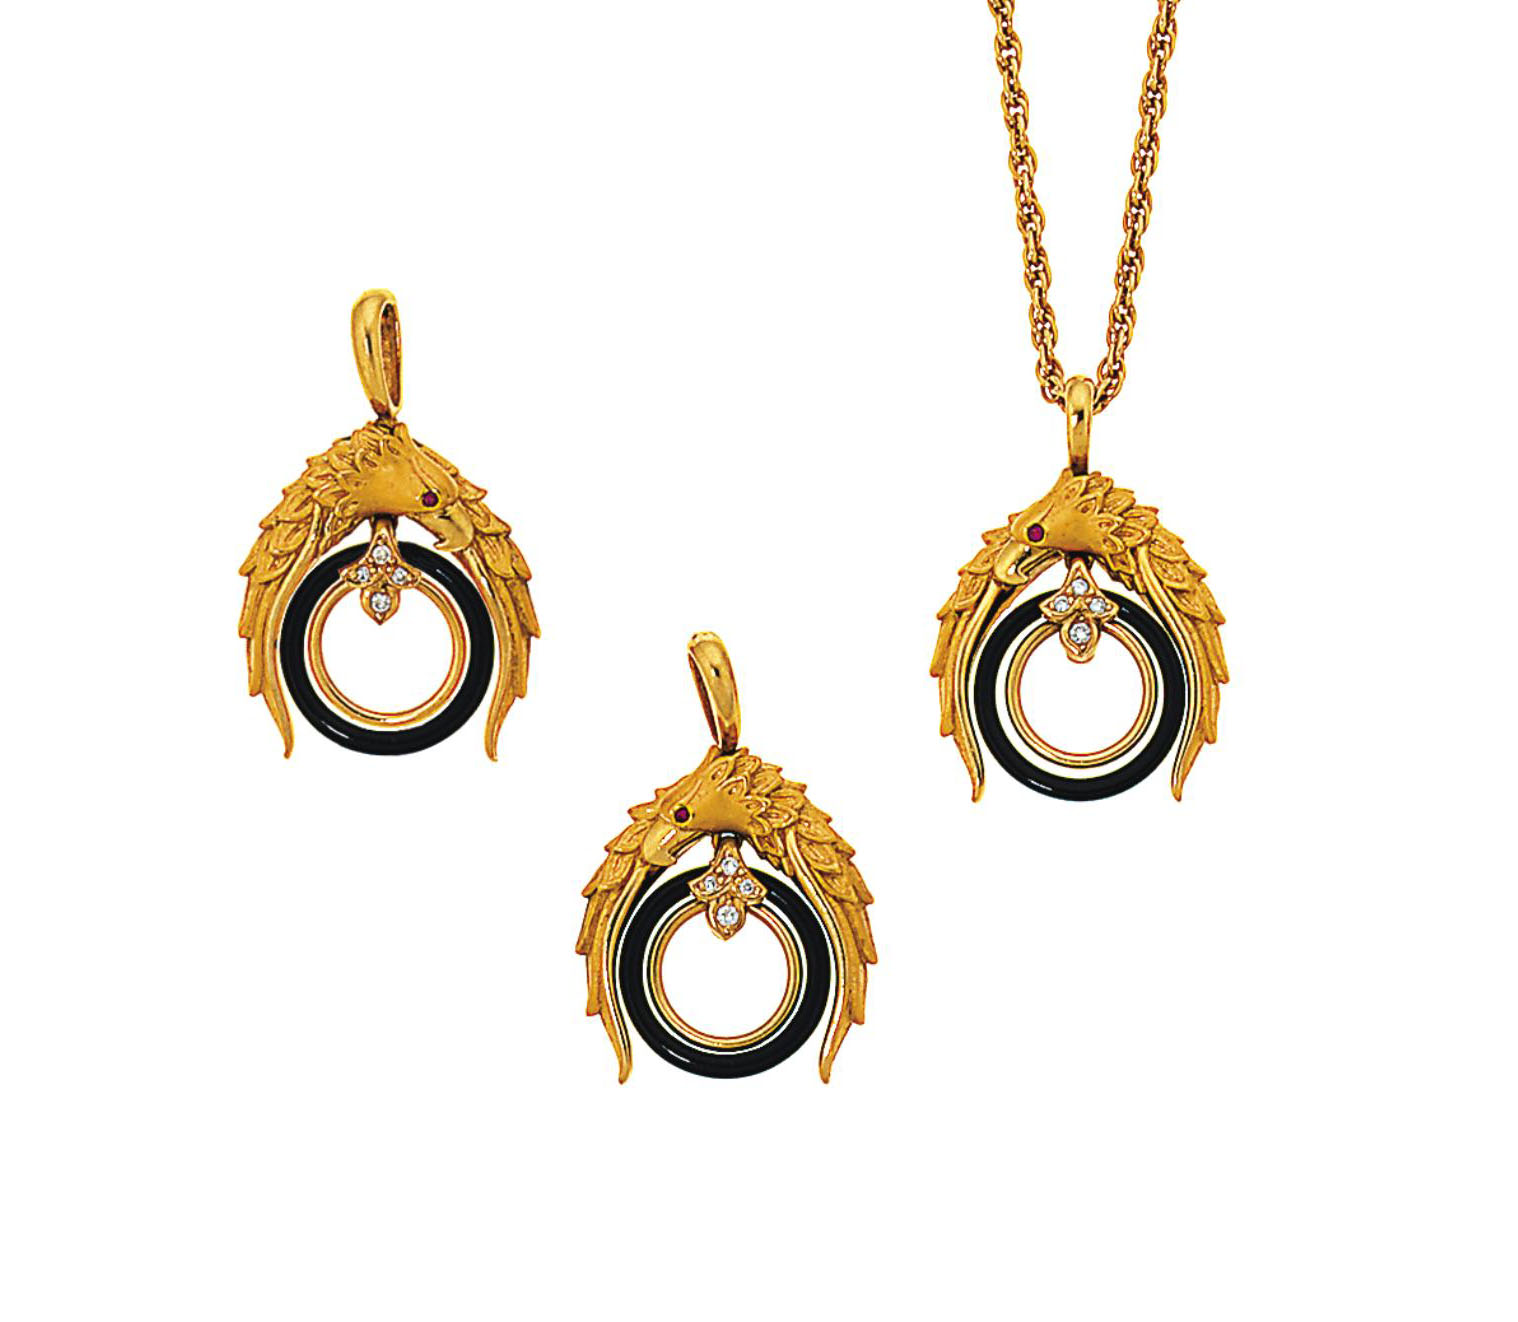 A pair of diamond, onyx and ruby-set earrings and pendant necklace, by Carrera y Carrera